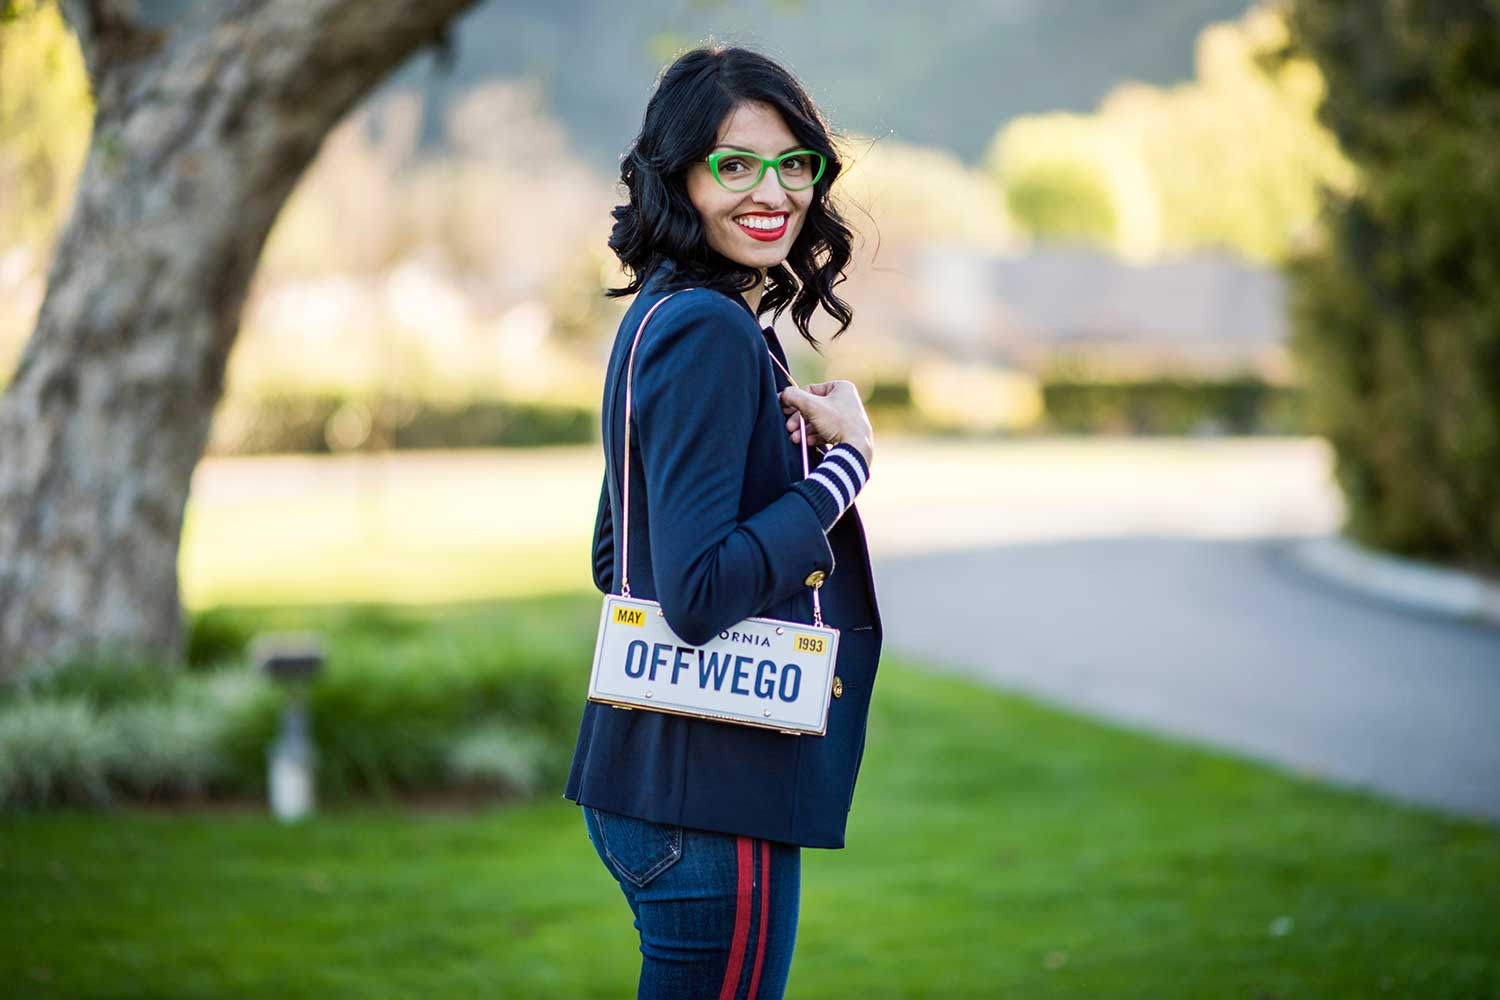 Jenna-Pilant-Style-Blogger-San-Diego-Lucky-Little-Mustardseed-Cabi-Clothing-Grand-Slam-Blazer-2